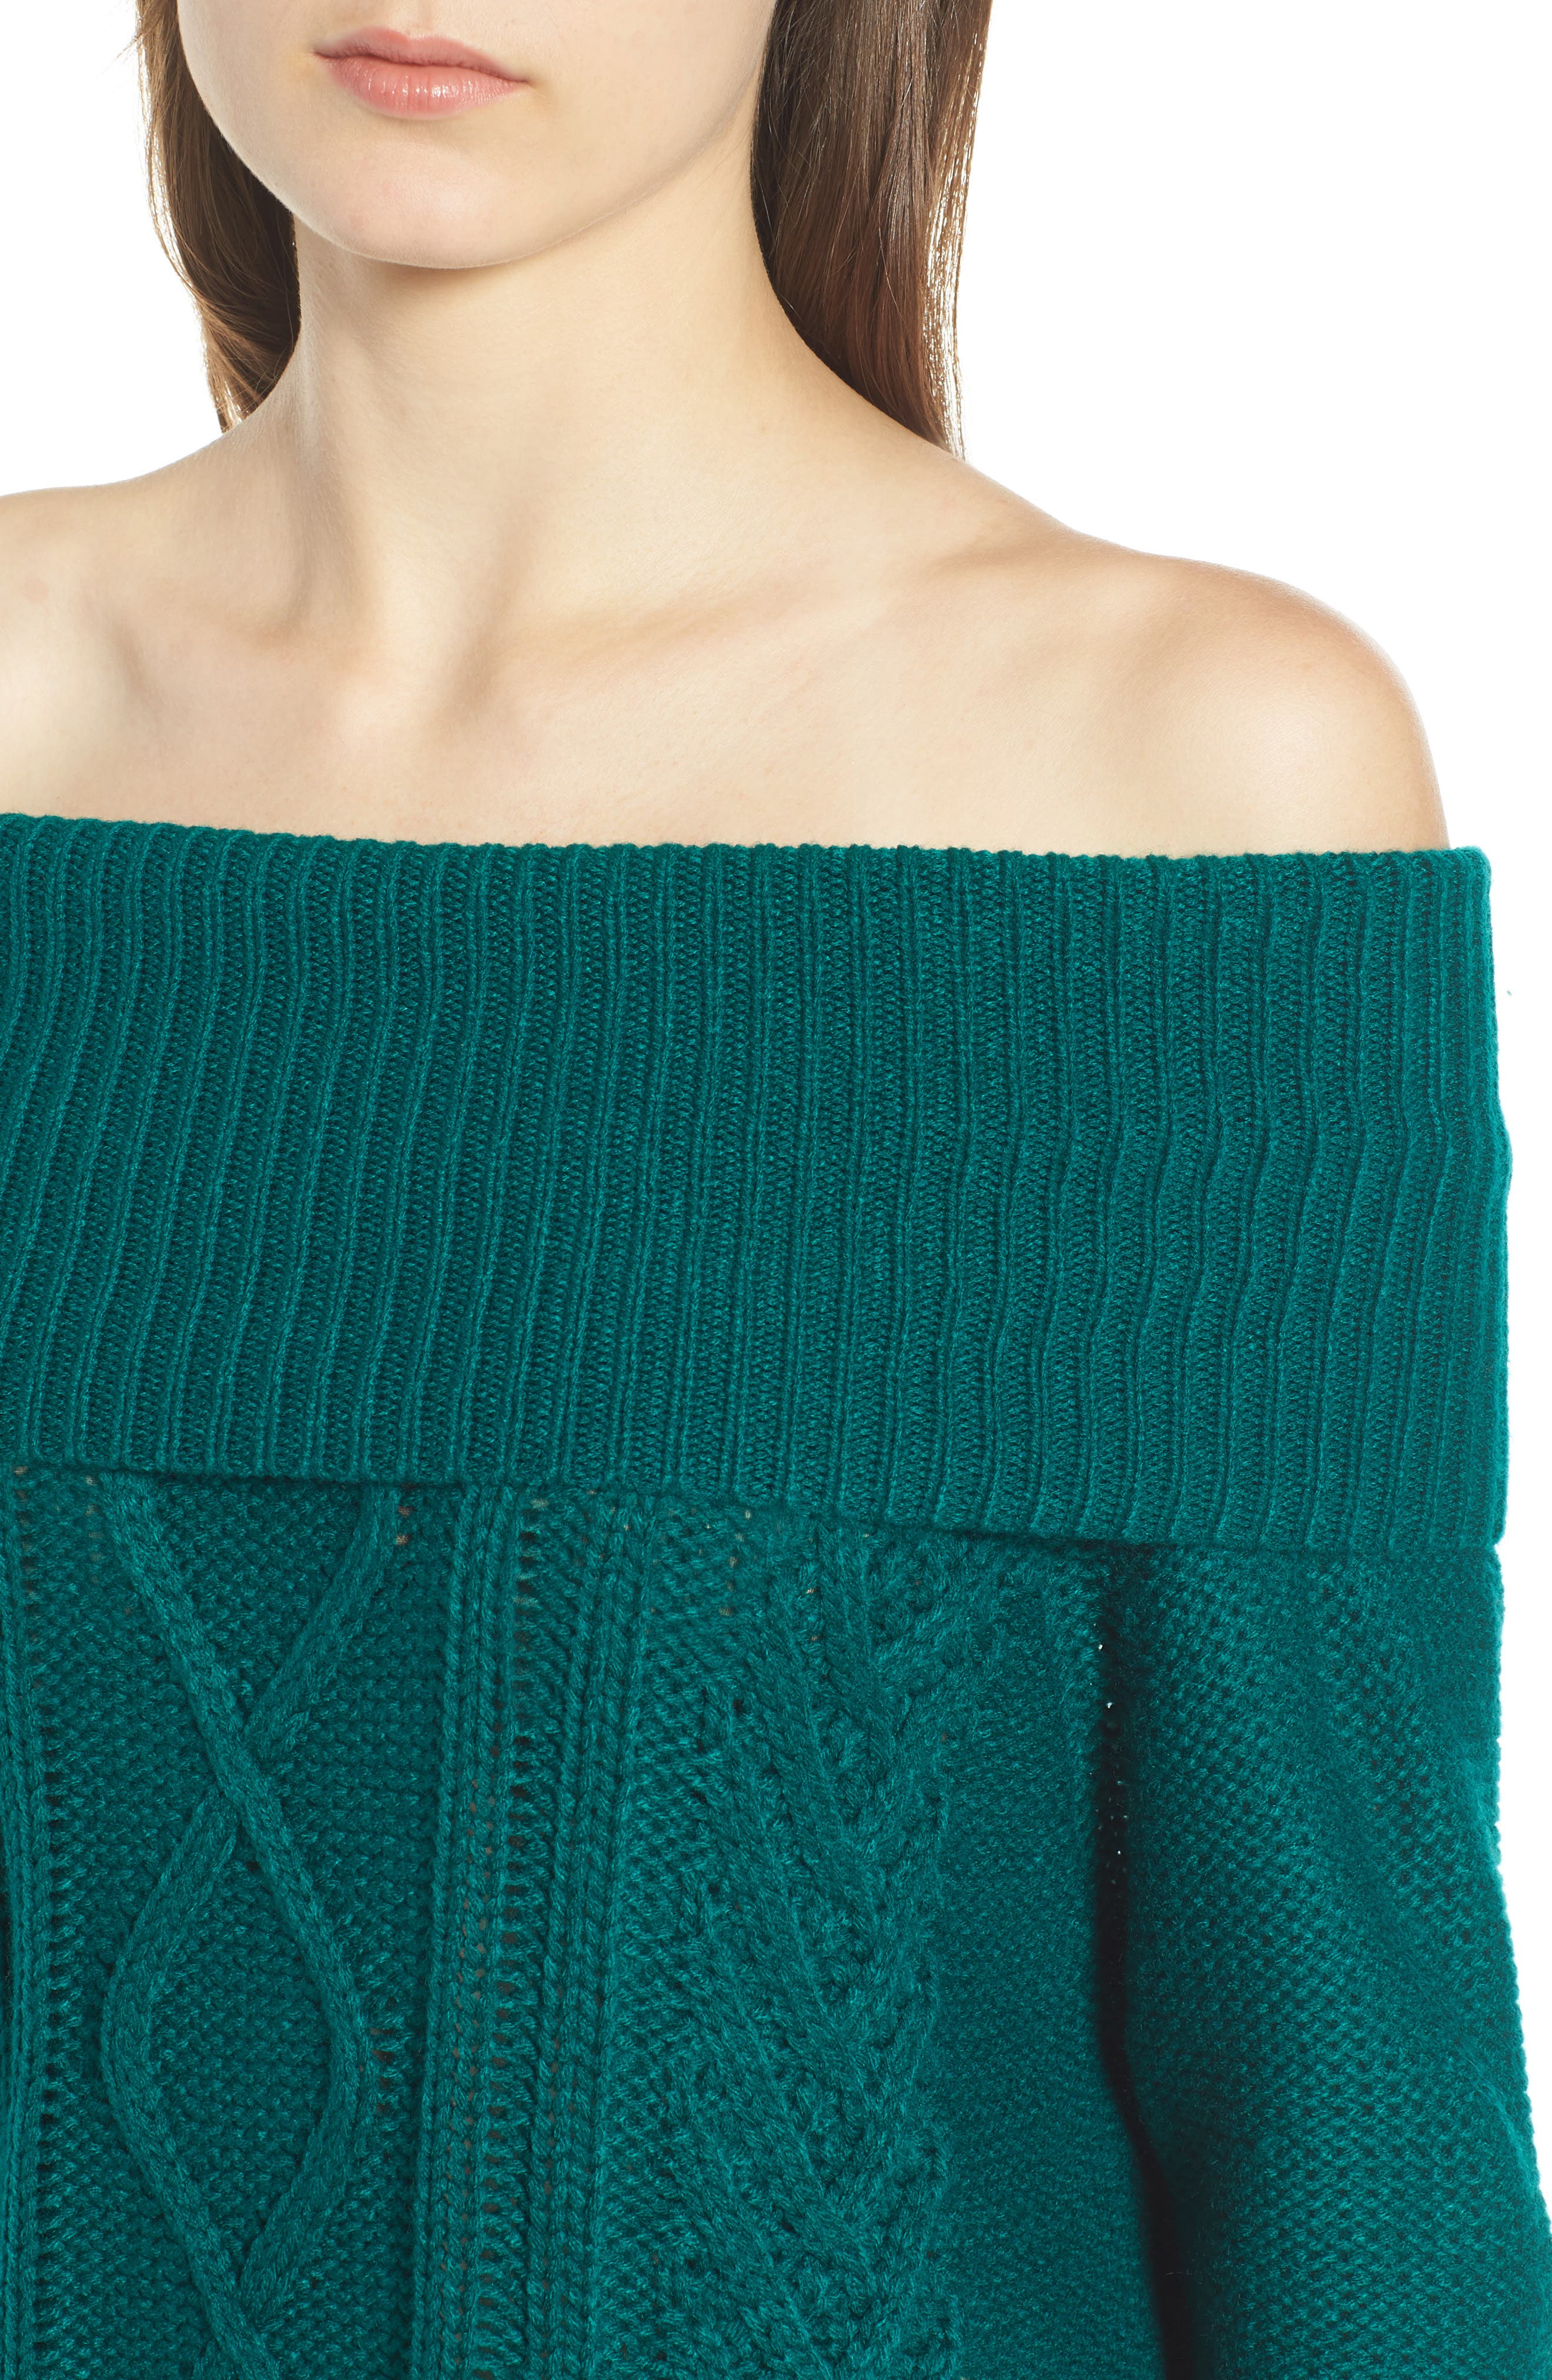 Off Shore Cable Knit Sweater,                             Alternate thumbnail 4, color,                             440